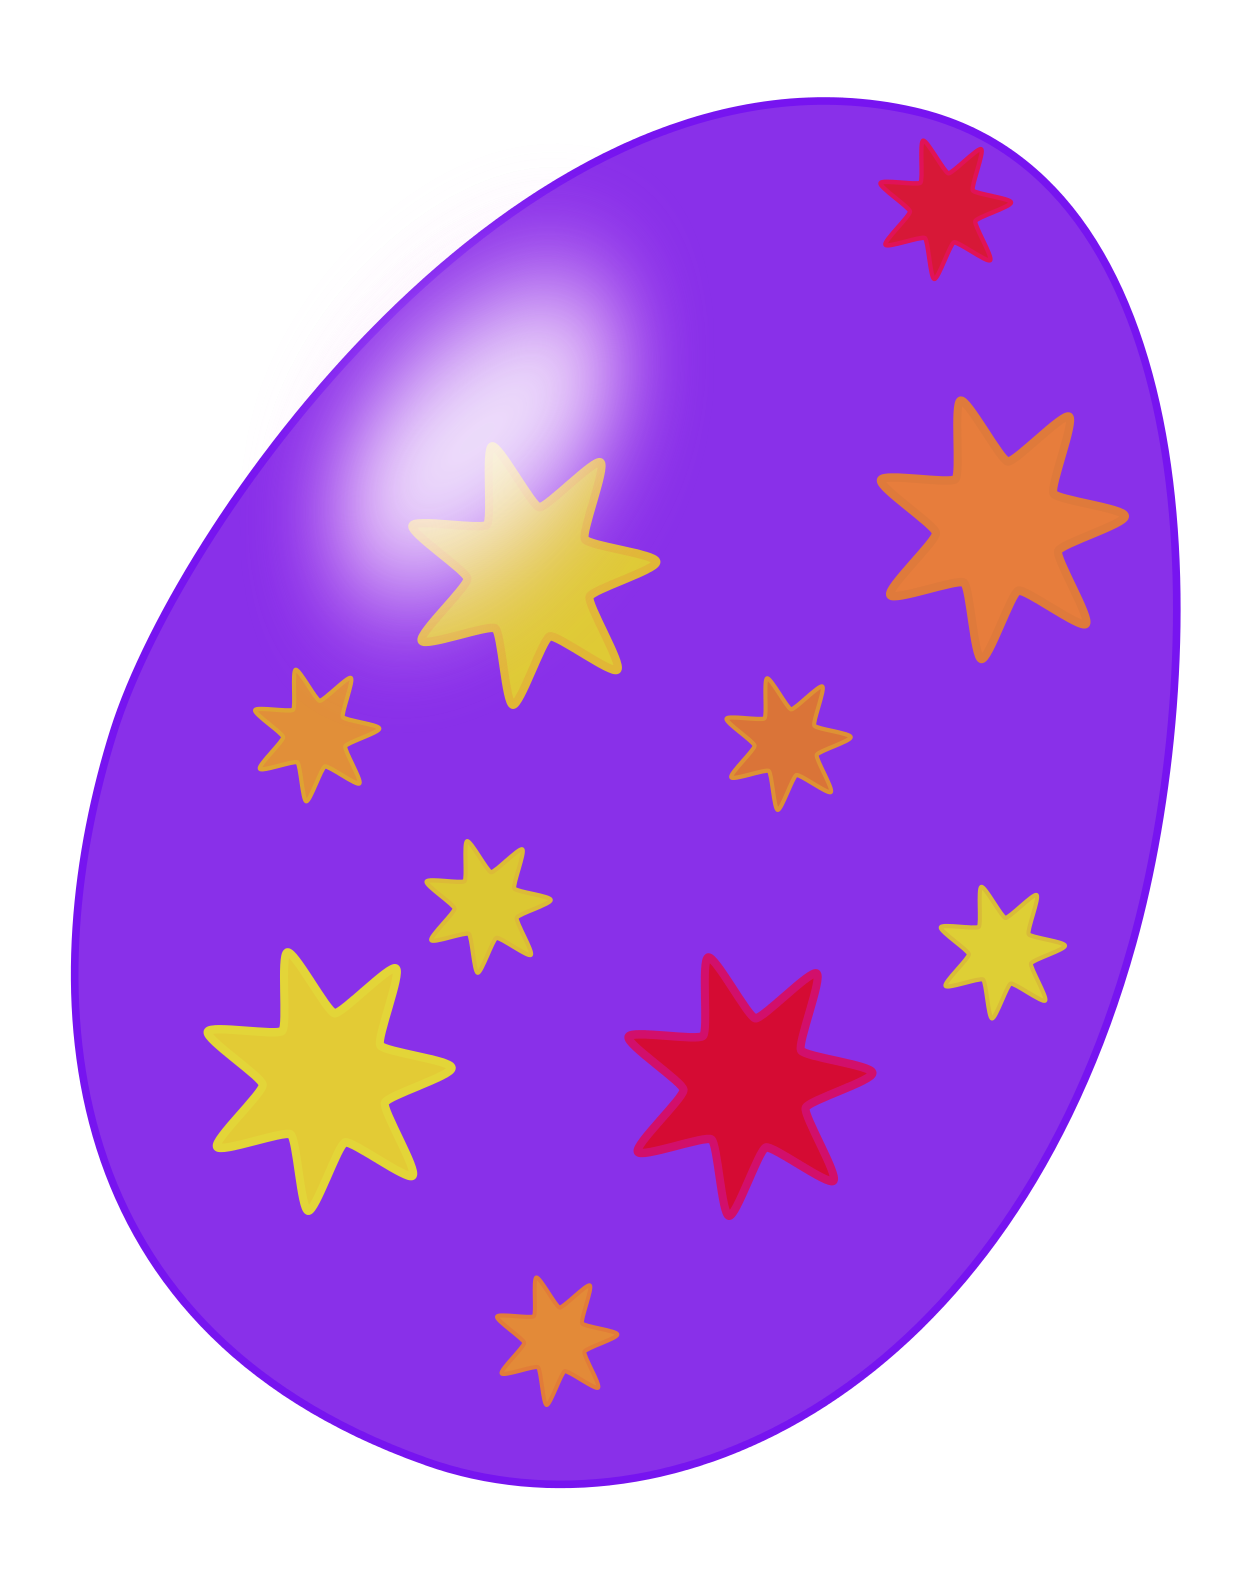 Public domain easter egg clipart graphic library download Free Easter Egg Clipart, Download Free Clip Art, Free Clip ... graphic library download